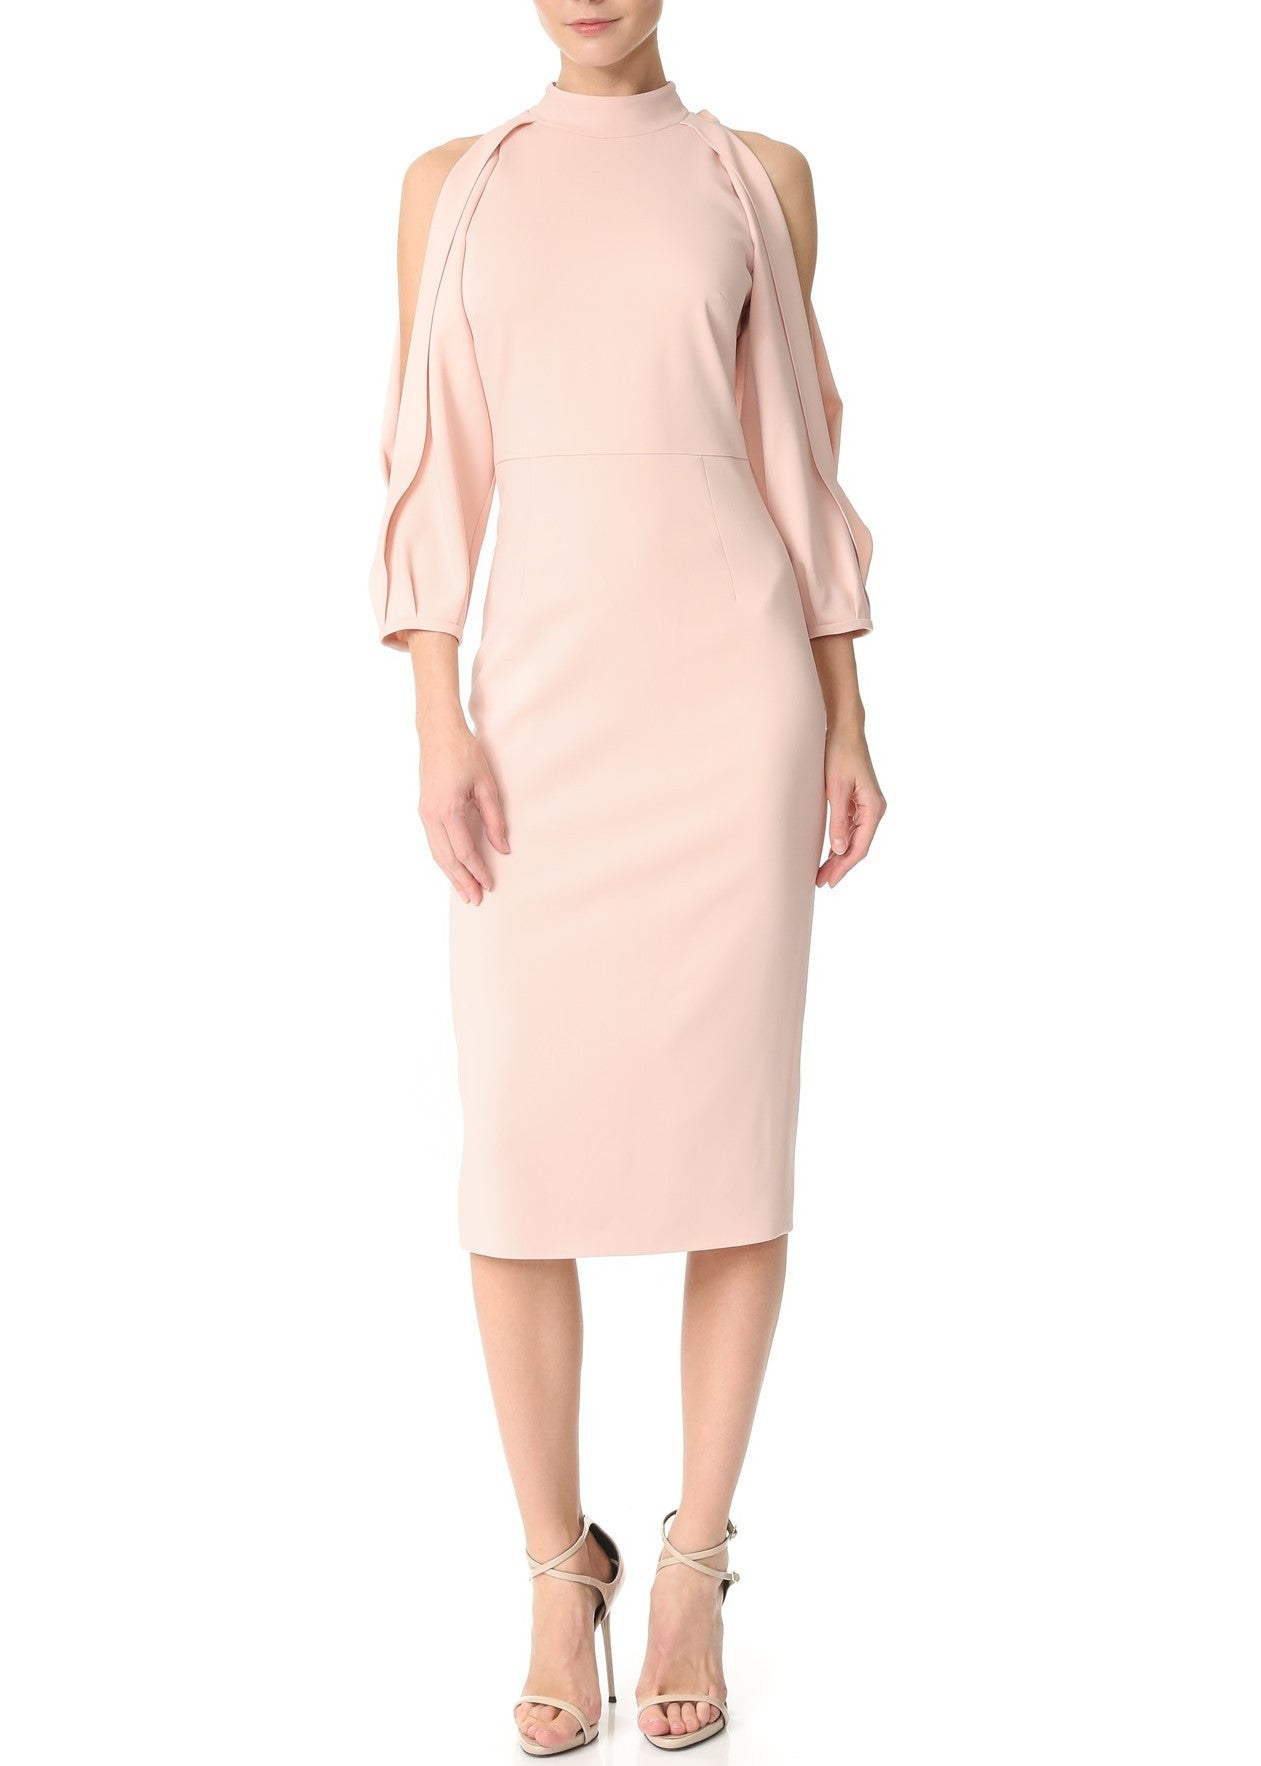 Cushnie et Ochs pencil dress with open sleeves shell